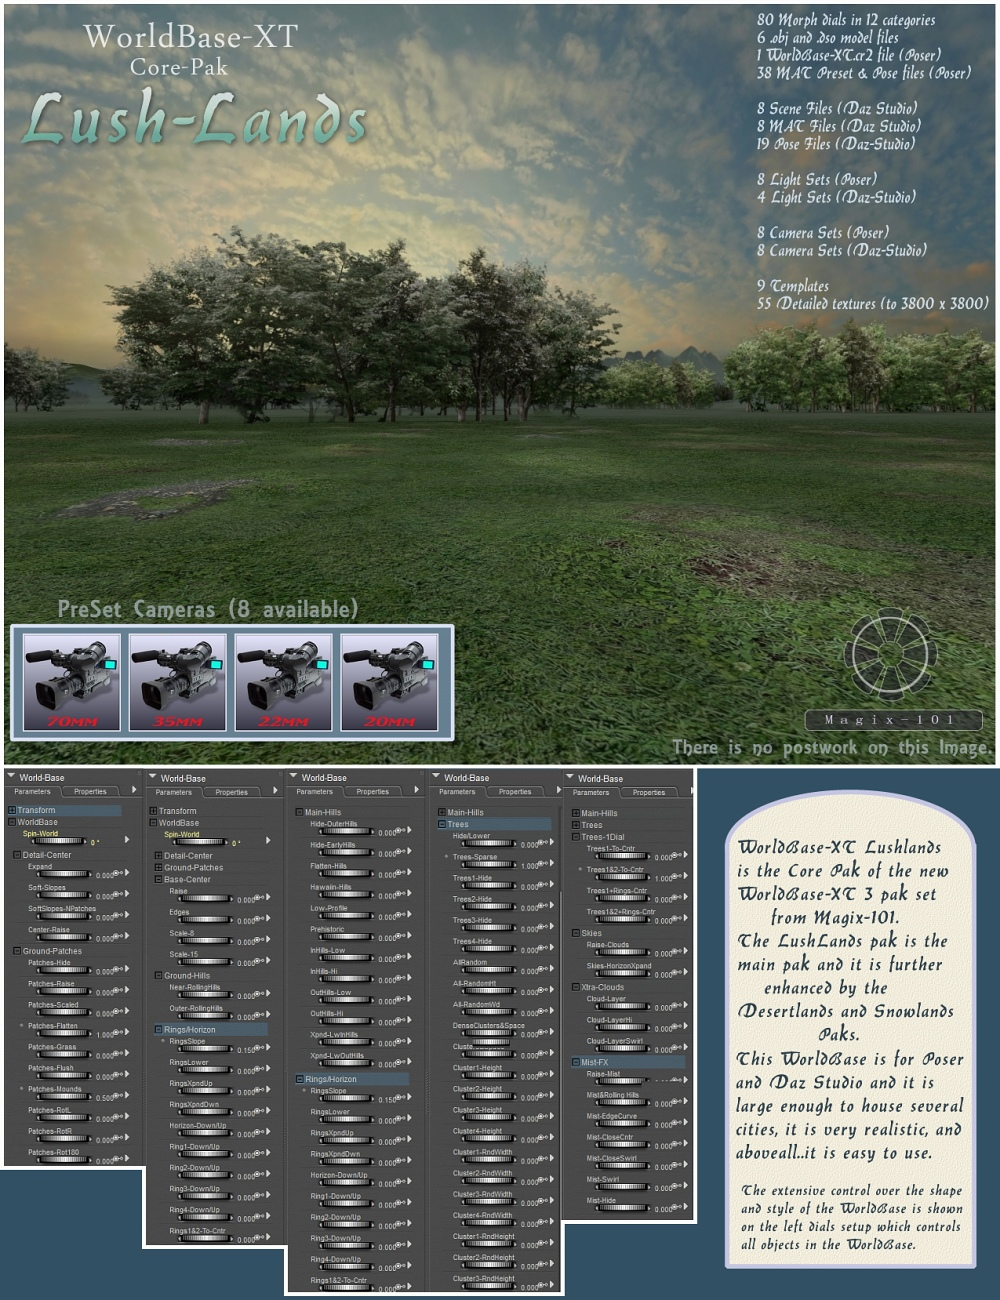 The All New Worldbase XT Lushlands by: Magix 101, 3D Models by Daz 3D